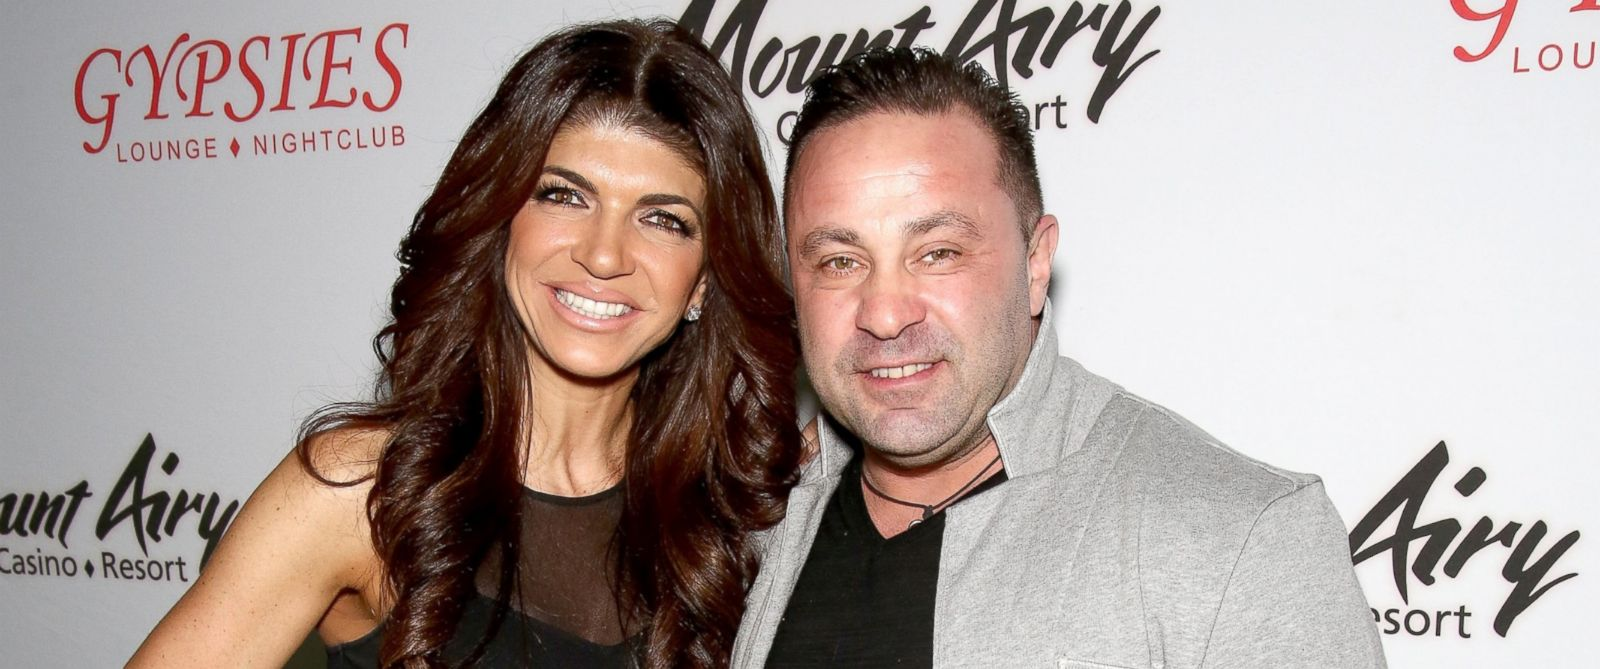 PHOTO: Teresa and Joe Giudice appear at Mount Airy Resort Casino for a book signing and meet and greet, March 5, 2016, in Mount Pocono City, Penn.